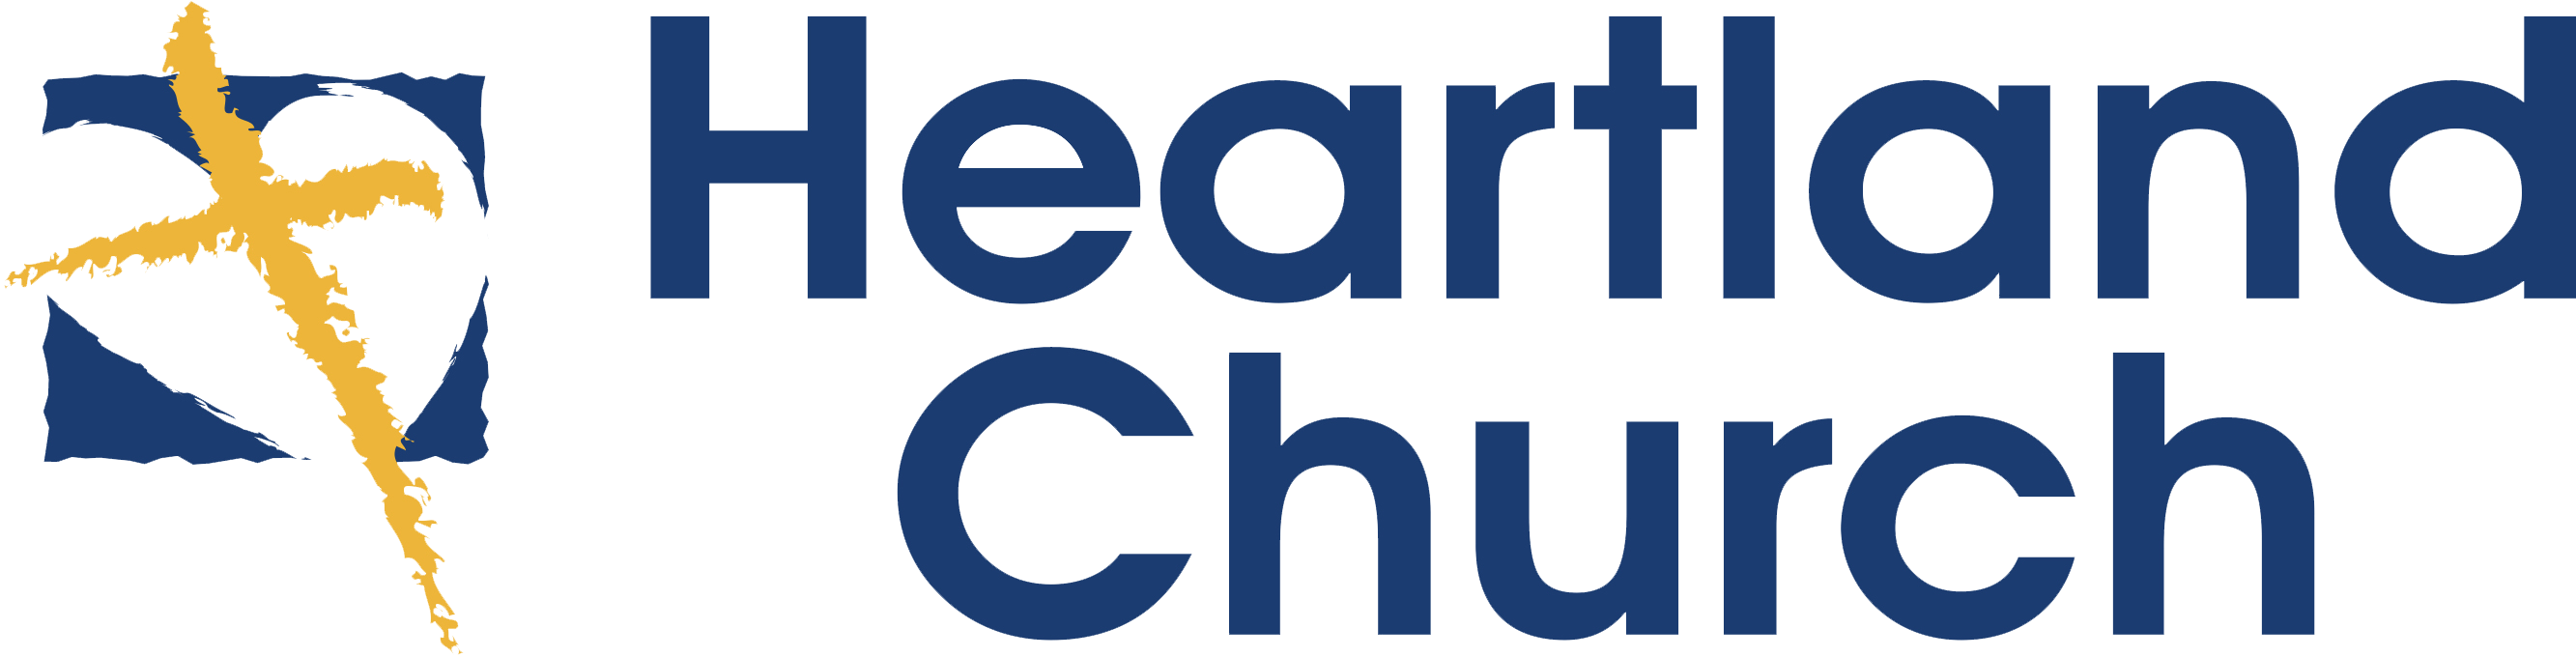 Heartland Community Baptist Church